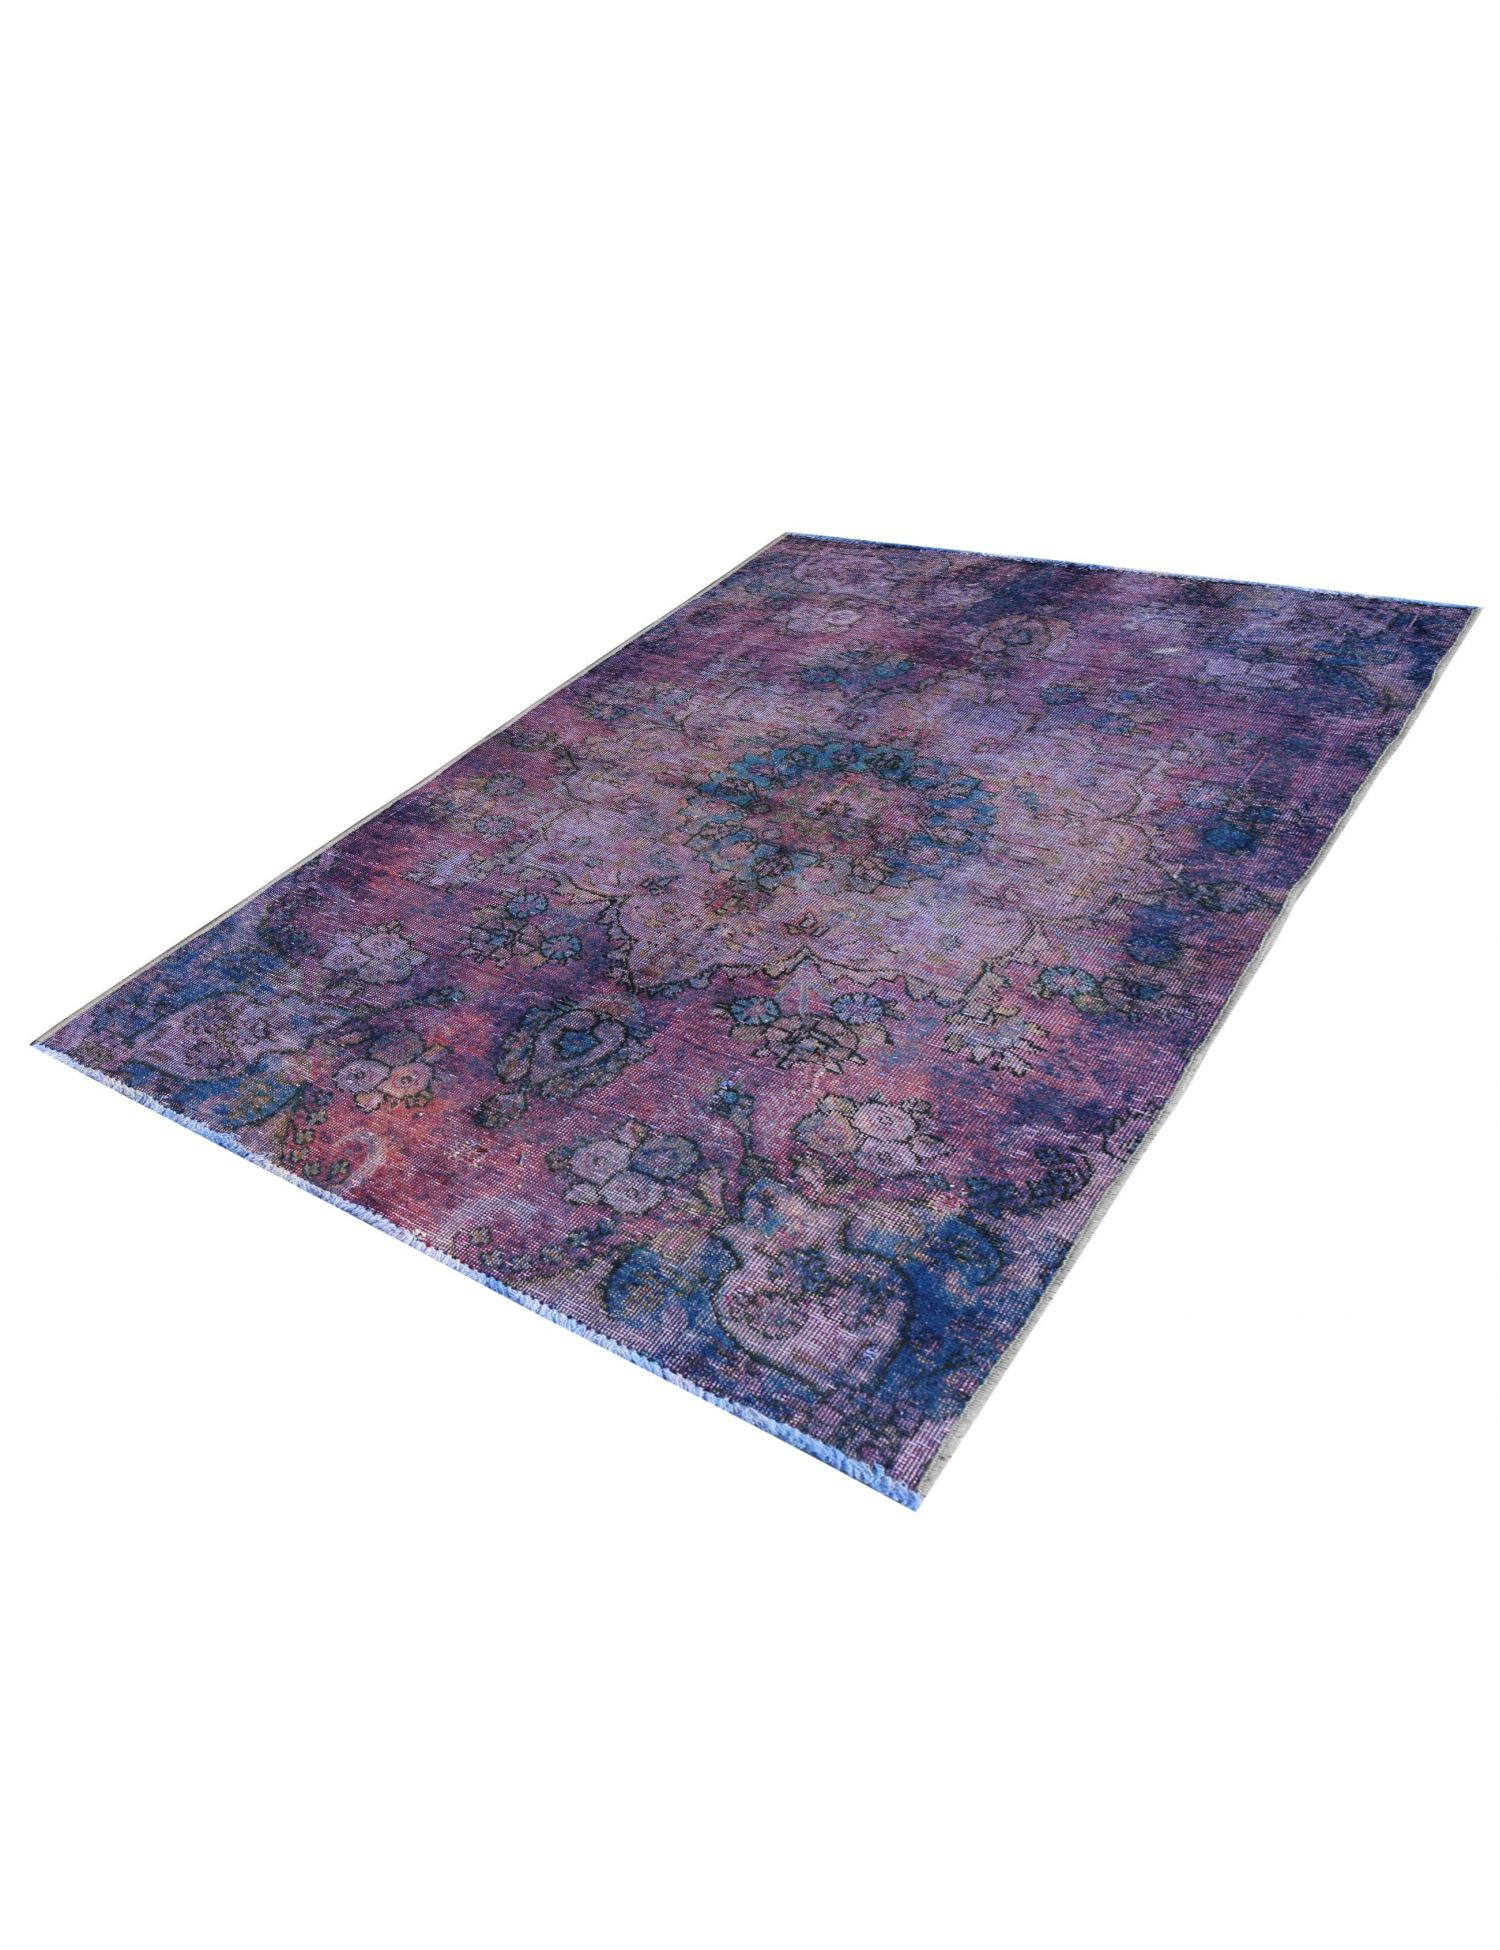 Vintage Carpet  blue <br/>204 x 126 cm